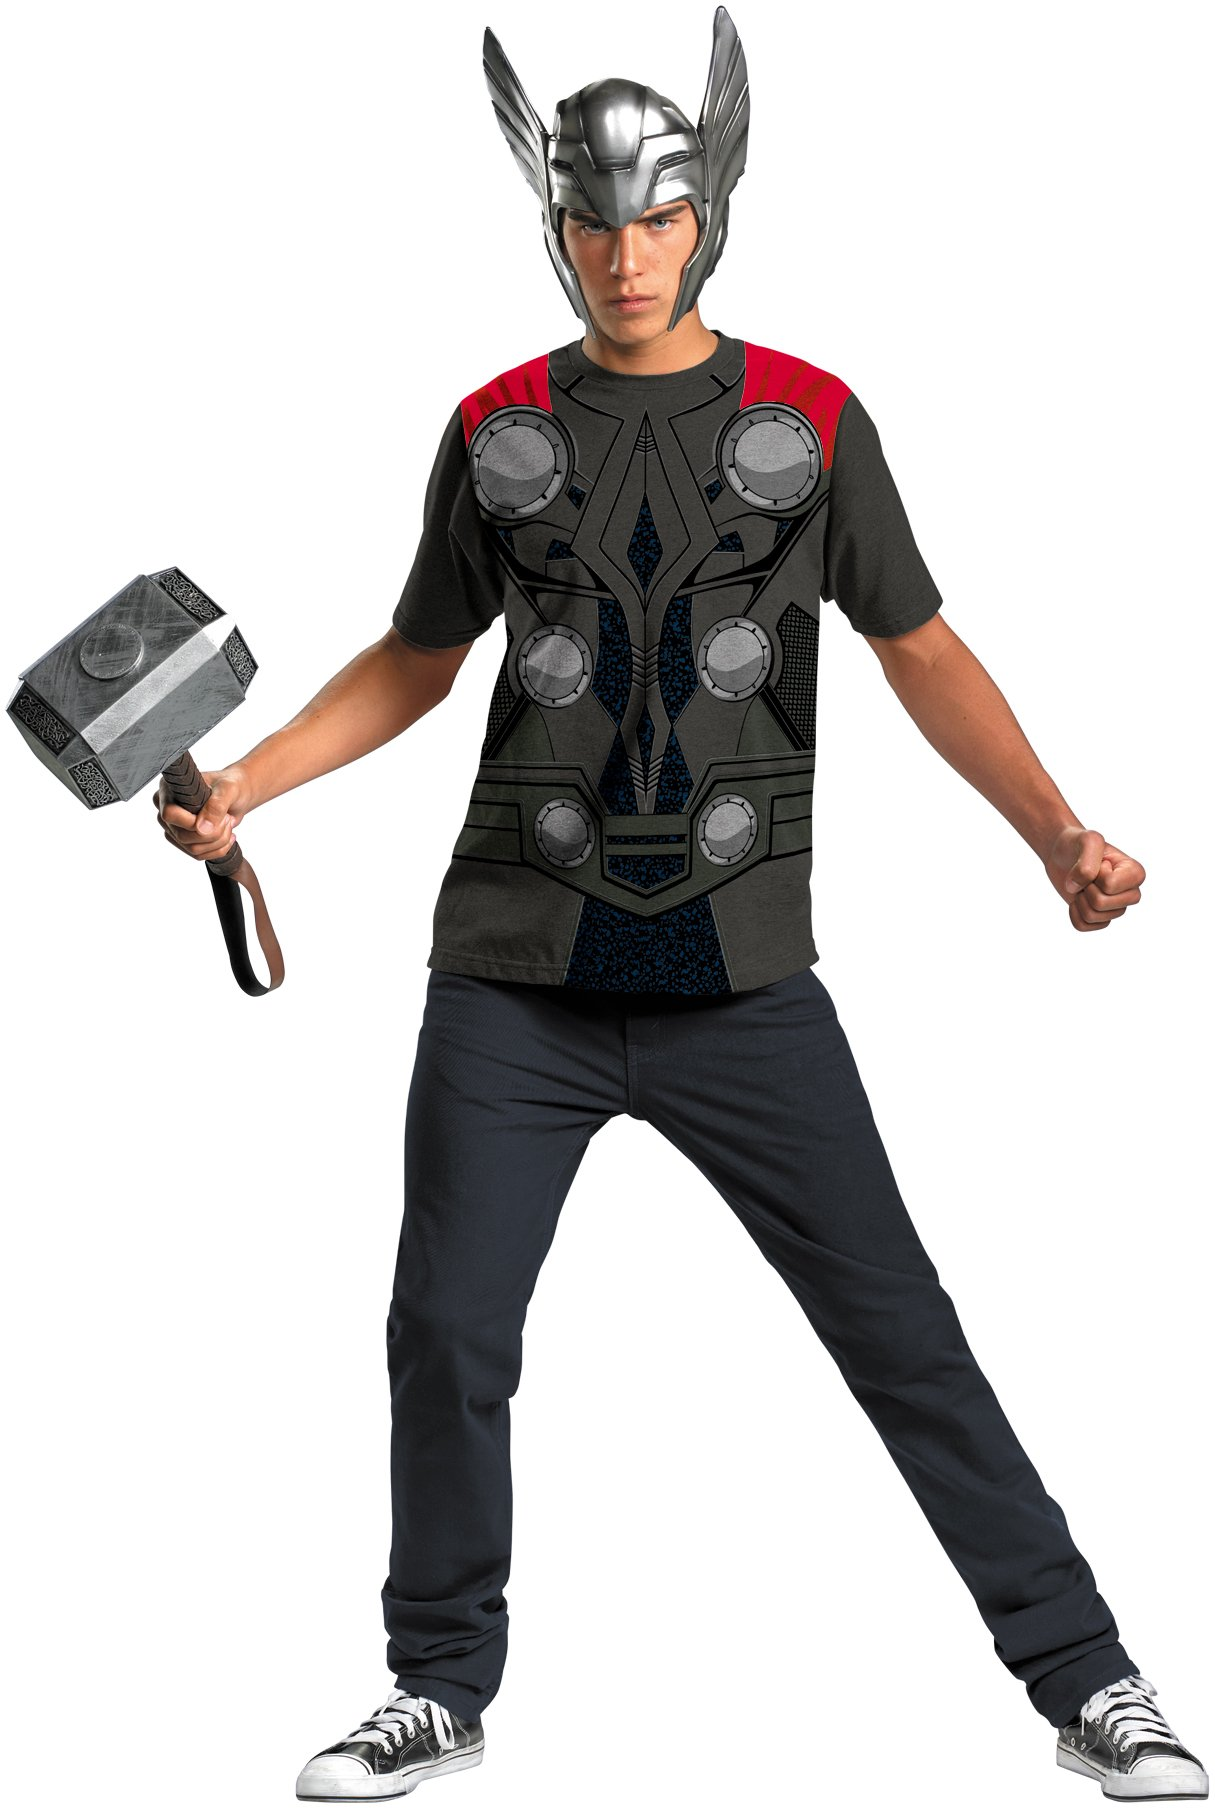 Thor Movie - Thor T-Shirt And Helmet Adult Costume Set